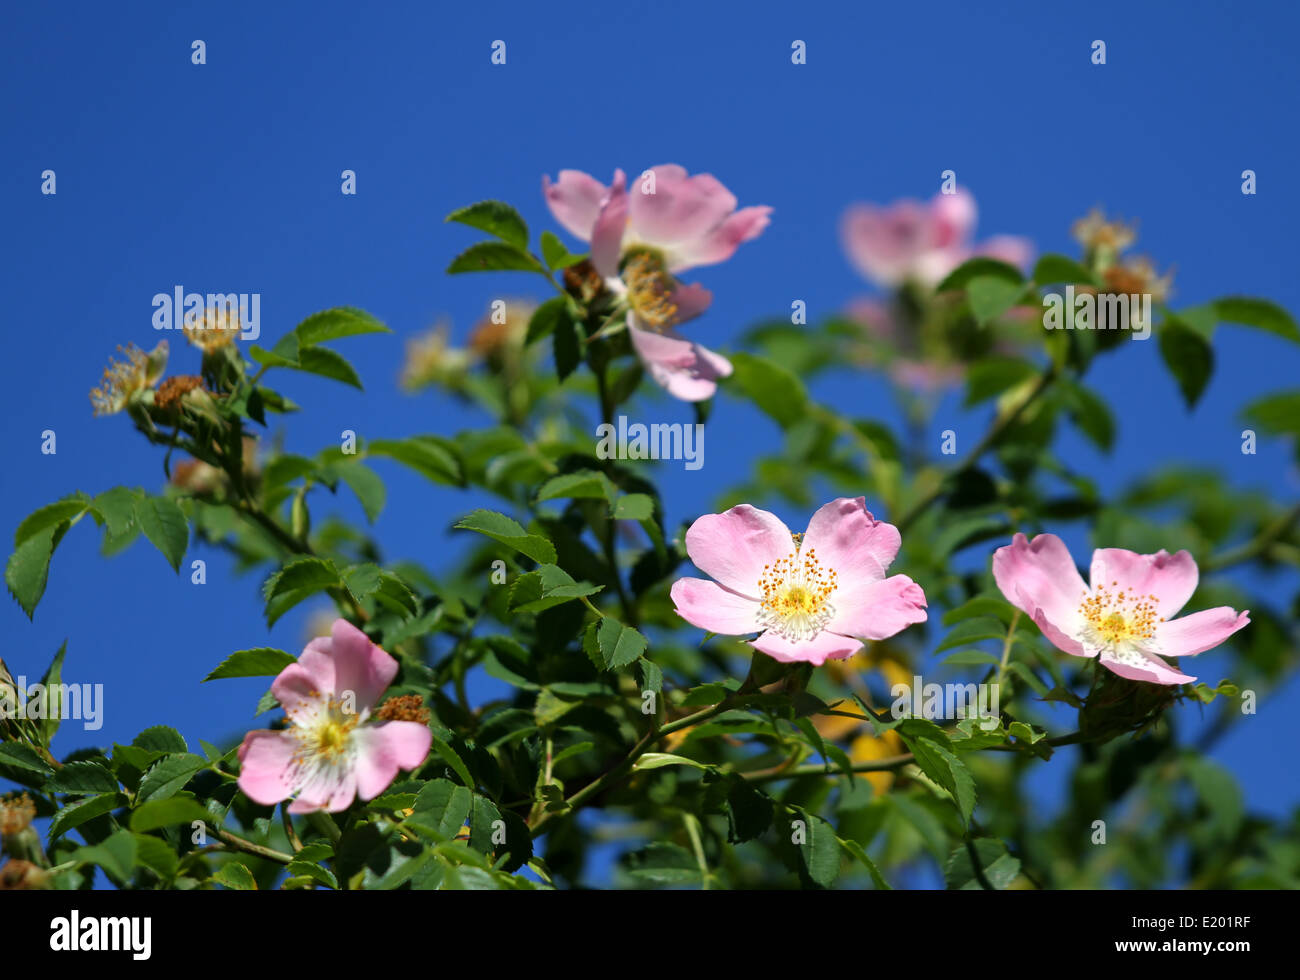 Thorns bush stock photos thorns bush stock images alamy beautiful pink wild roses in a bush of thorns in spring stock image mightylinksfo